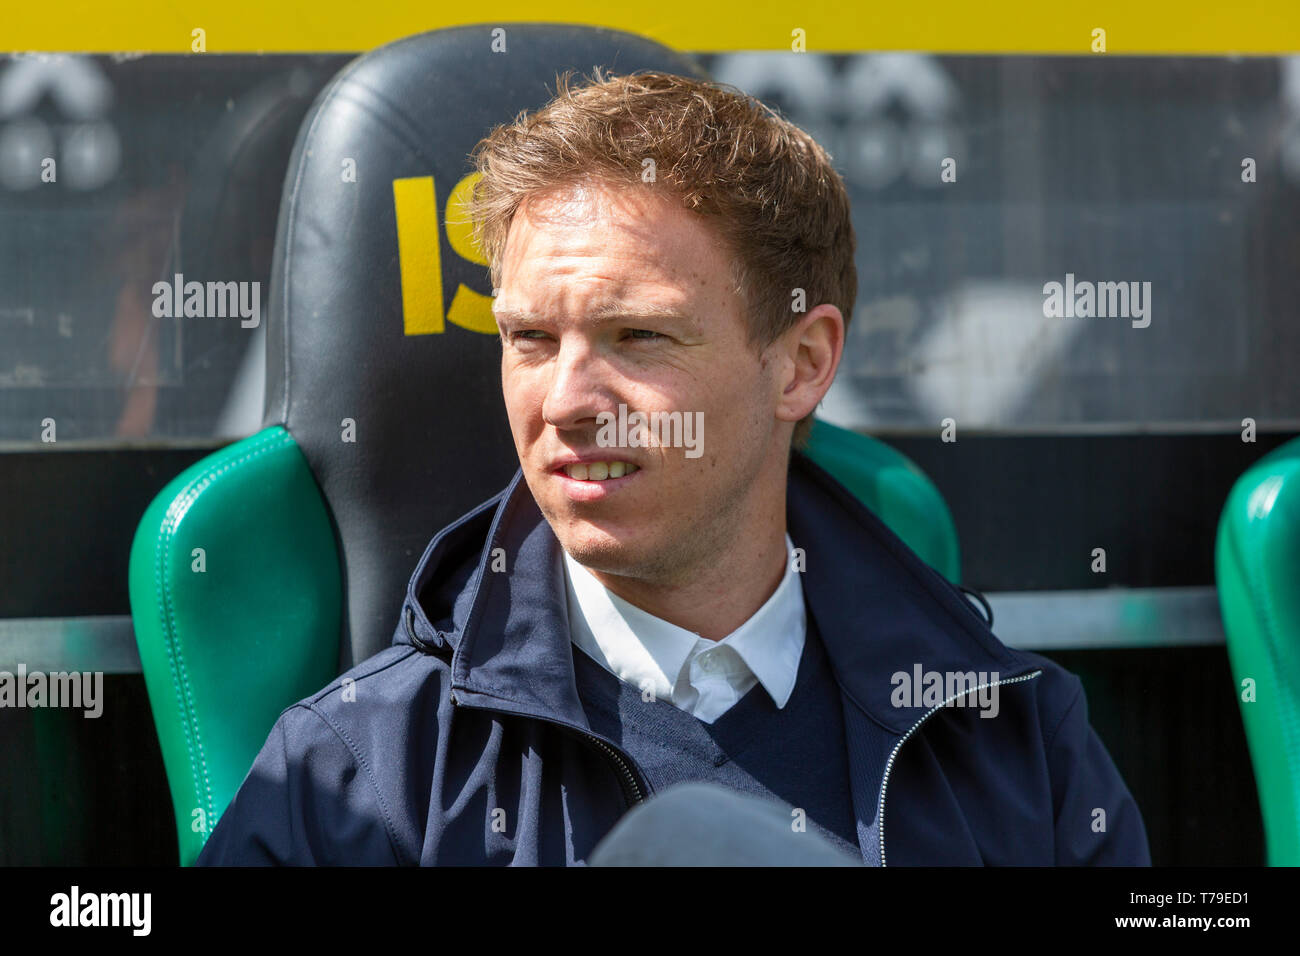 sports, football, Bundesliga, 2018/2019, Borussia Moenchengladbach vs. TSG 1899 Hoffenheim 2-2, Stadium Borussia Park, head coach Julian Nagelsmann (TSG), DFL REGULATIONS PROHIBIT ANY USE OF PHOTOGRAPHS AS IMAGE SEQUENCES AND/OR QUASI-VIDEO - Stock Image